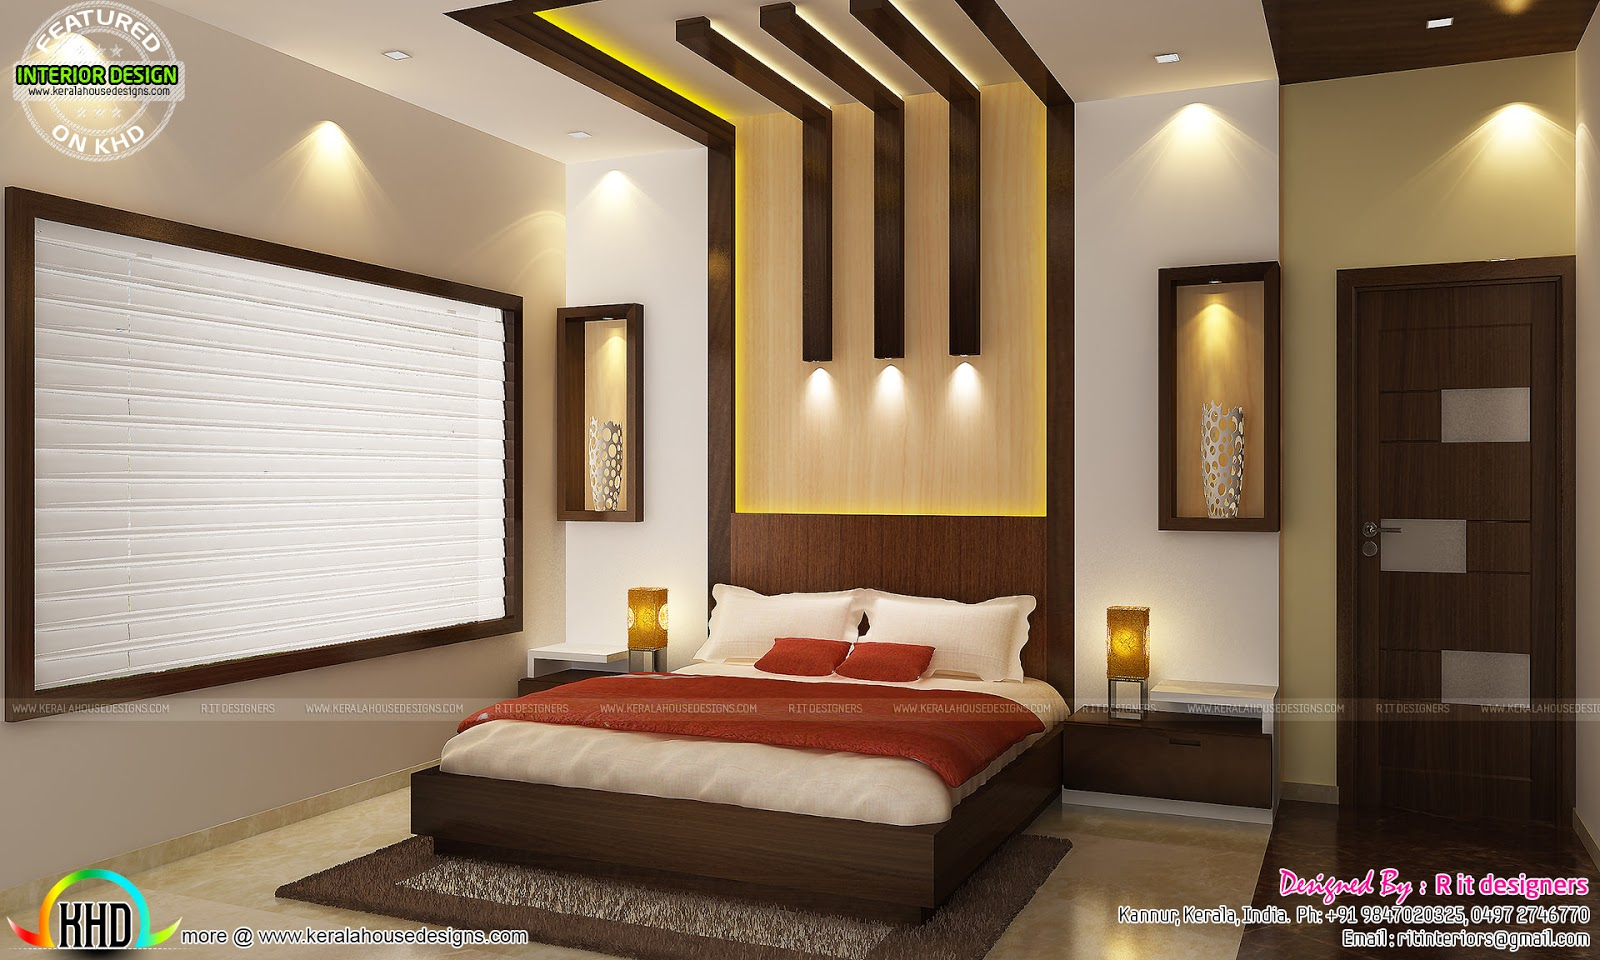 Kitchen living bedroom dining interior decor kerala Home interior design bedroom